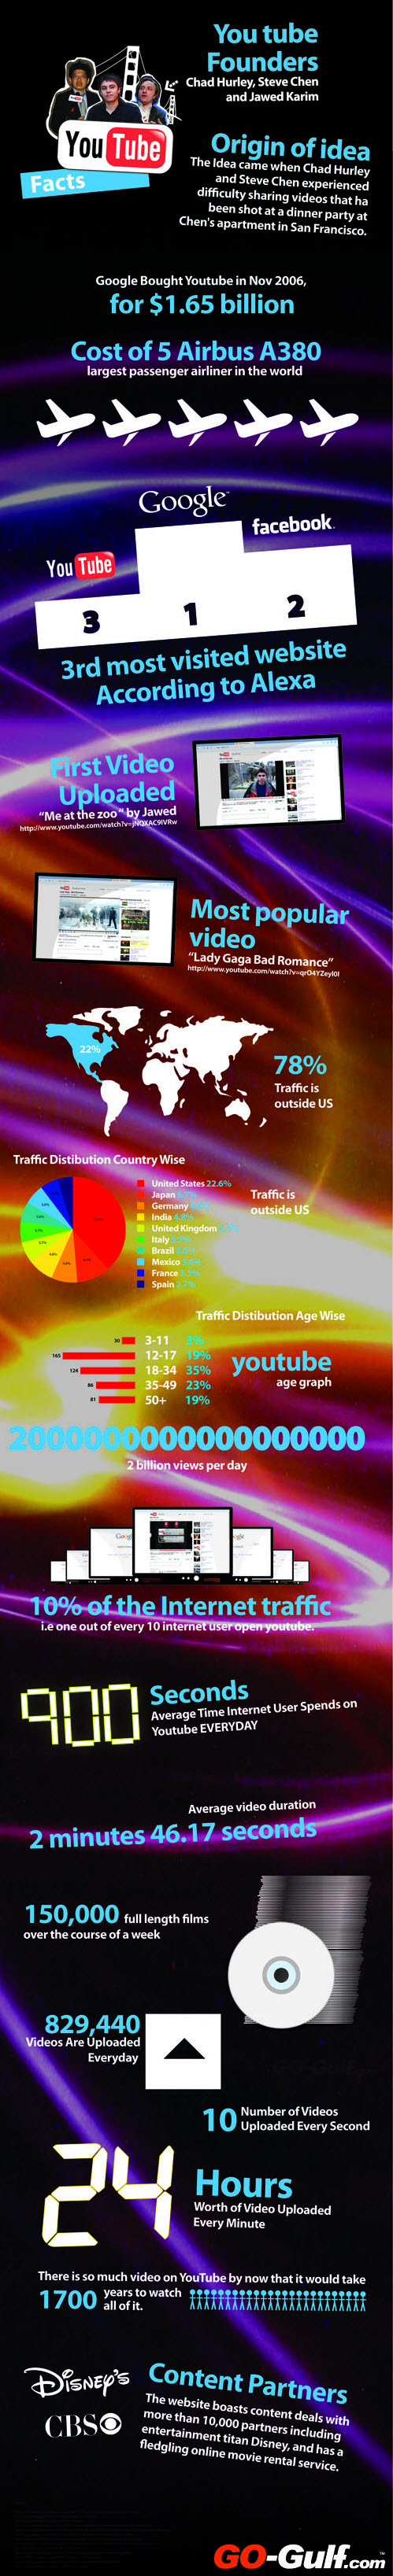 YouTube Facts Figures and statistics Infographic 2012